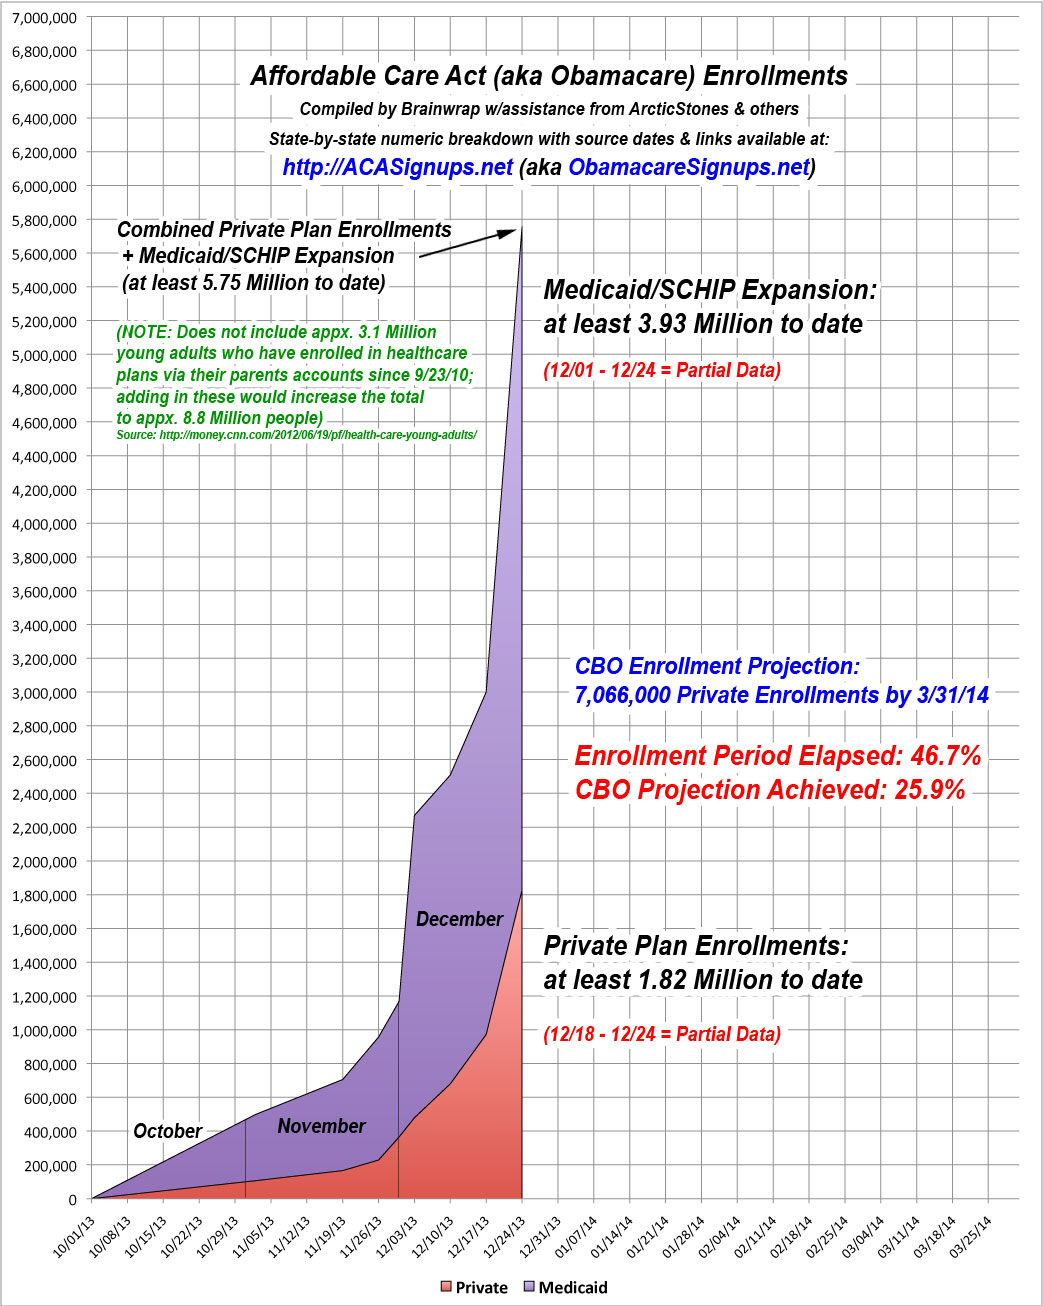 ACA Enrollments - Week 12